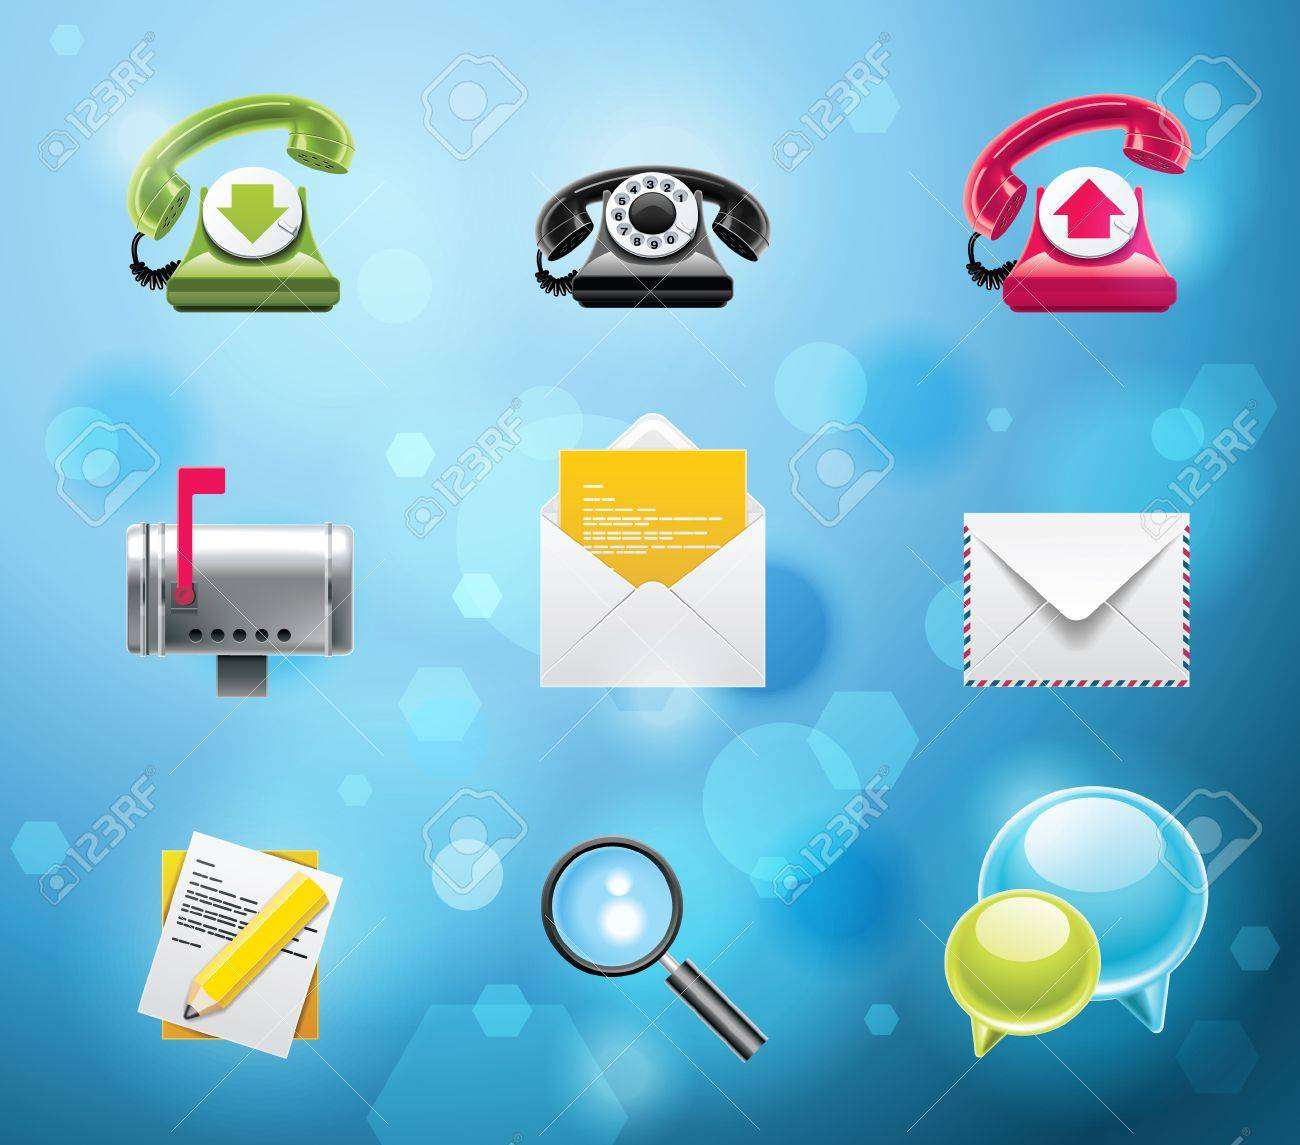 Typical mobile phone apps and services icons. EPS 10 version. Part 1 of 10 Stock Vector - 7812740